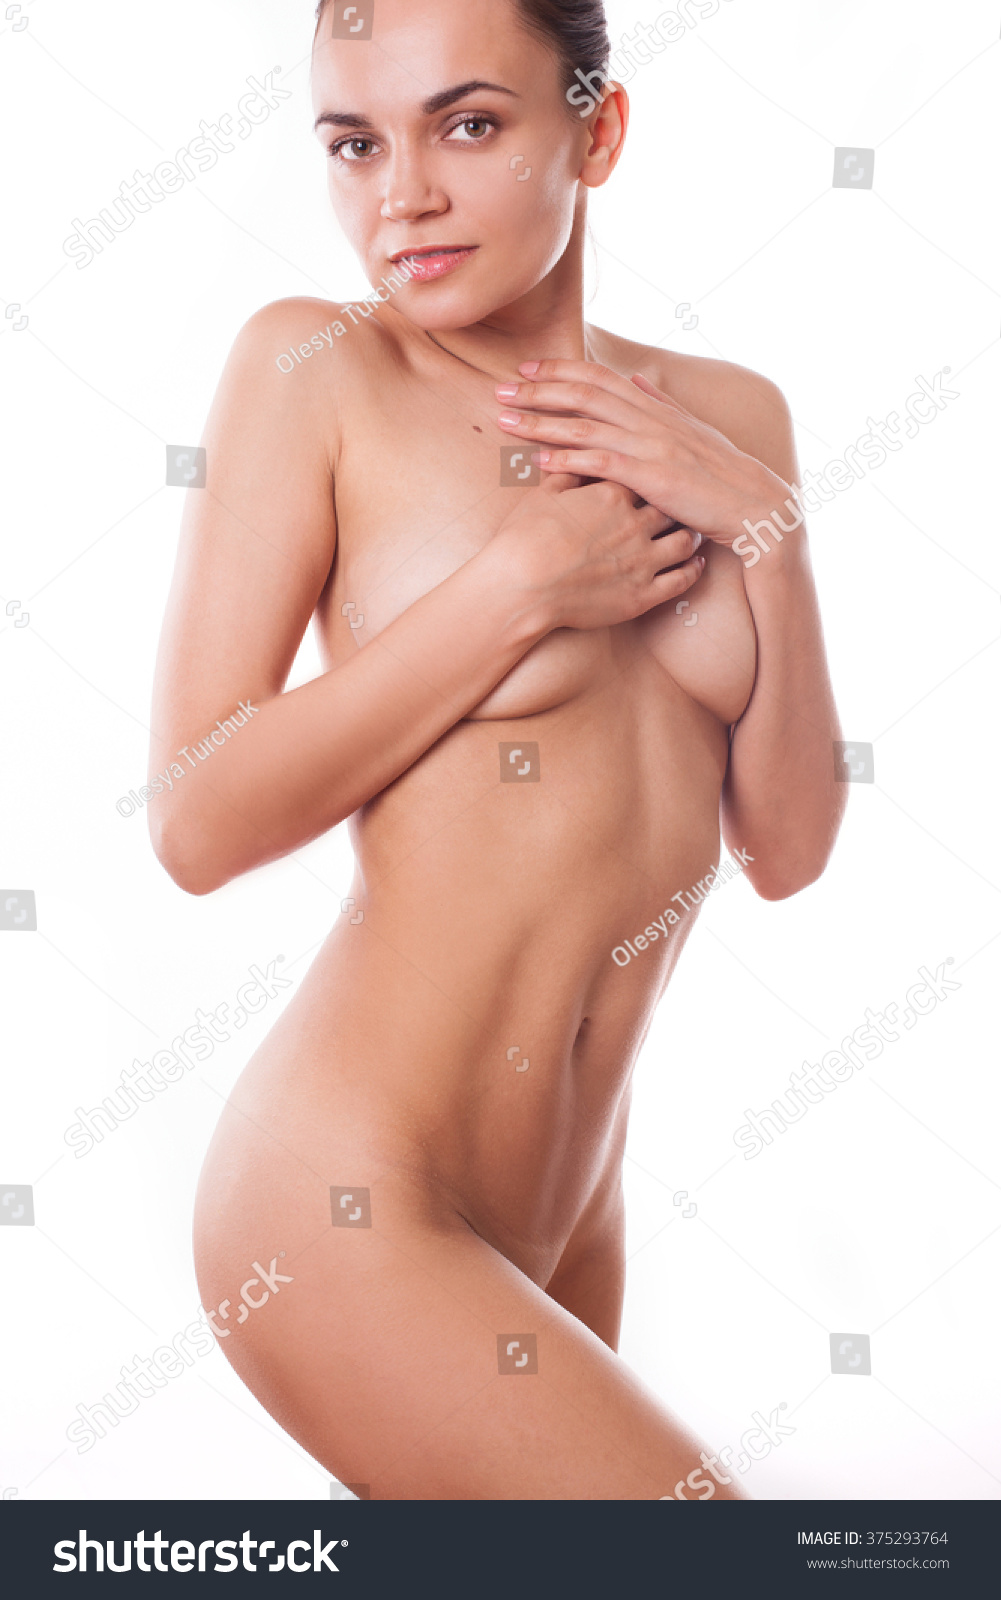 girl-naked-covering-her-face-the-venture-brothers-doctor-girlfriend-naked